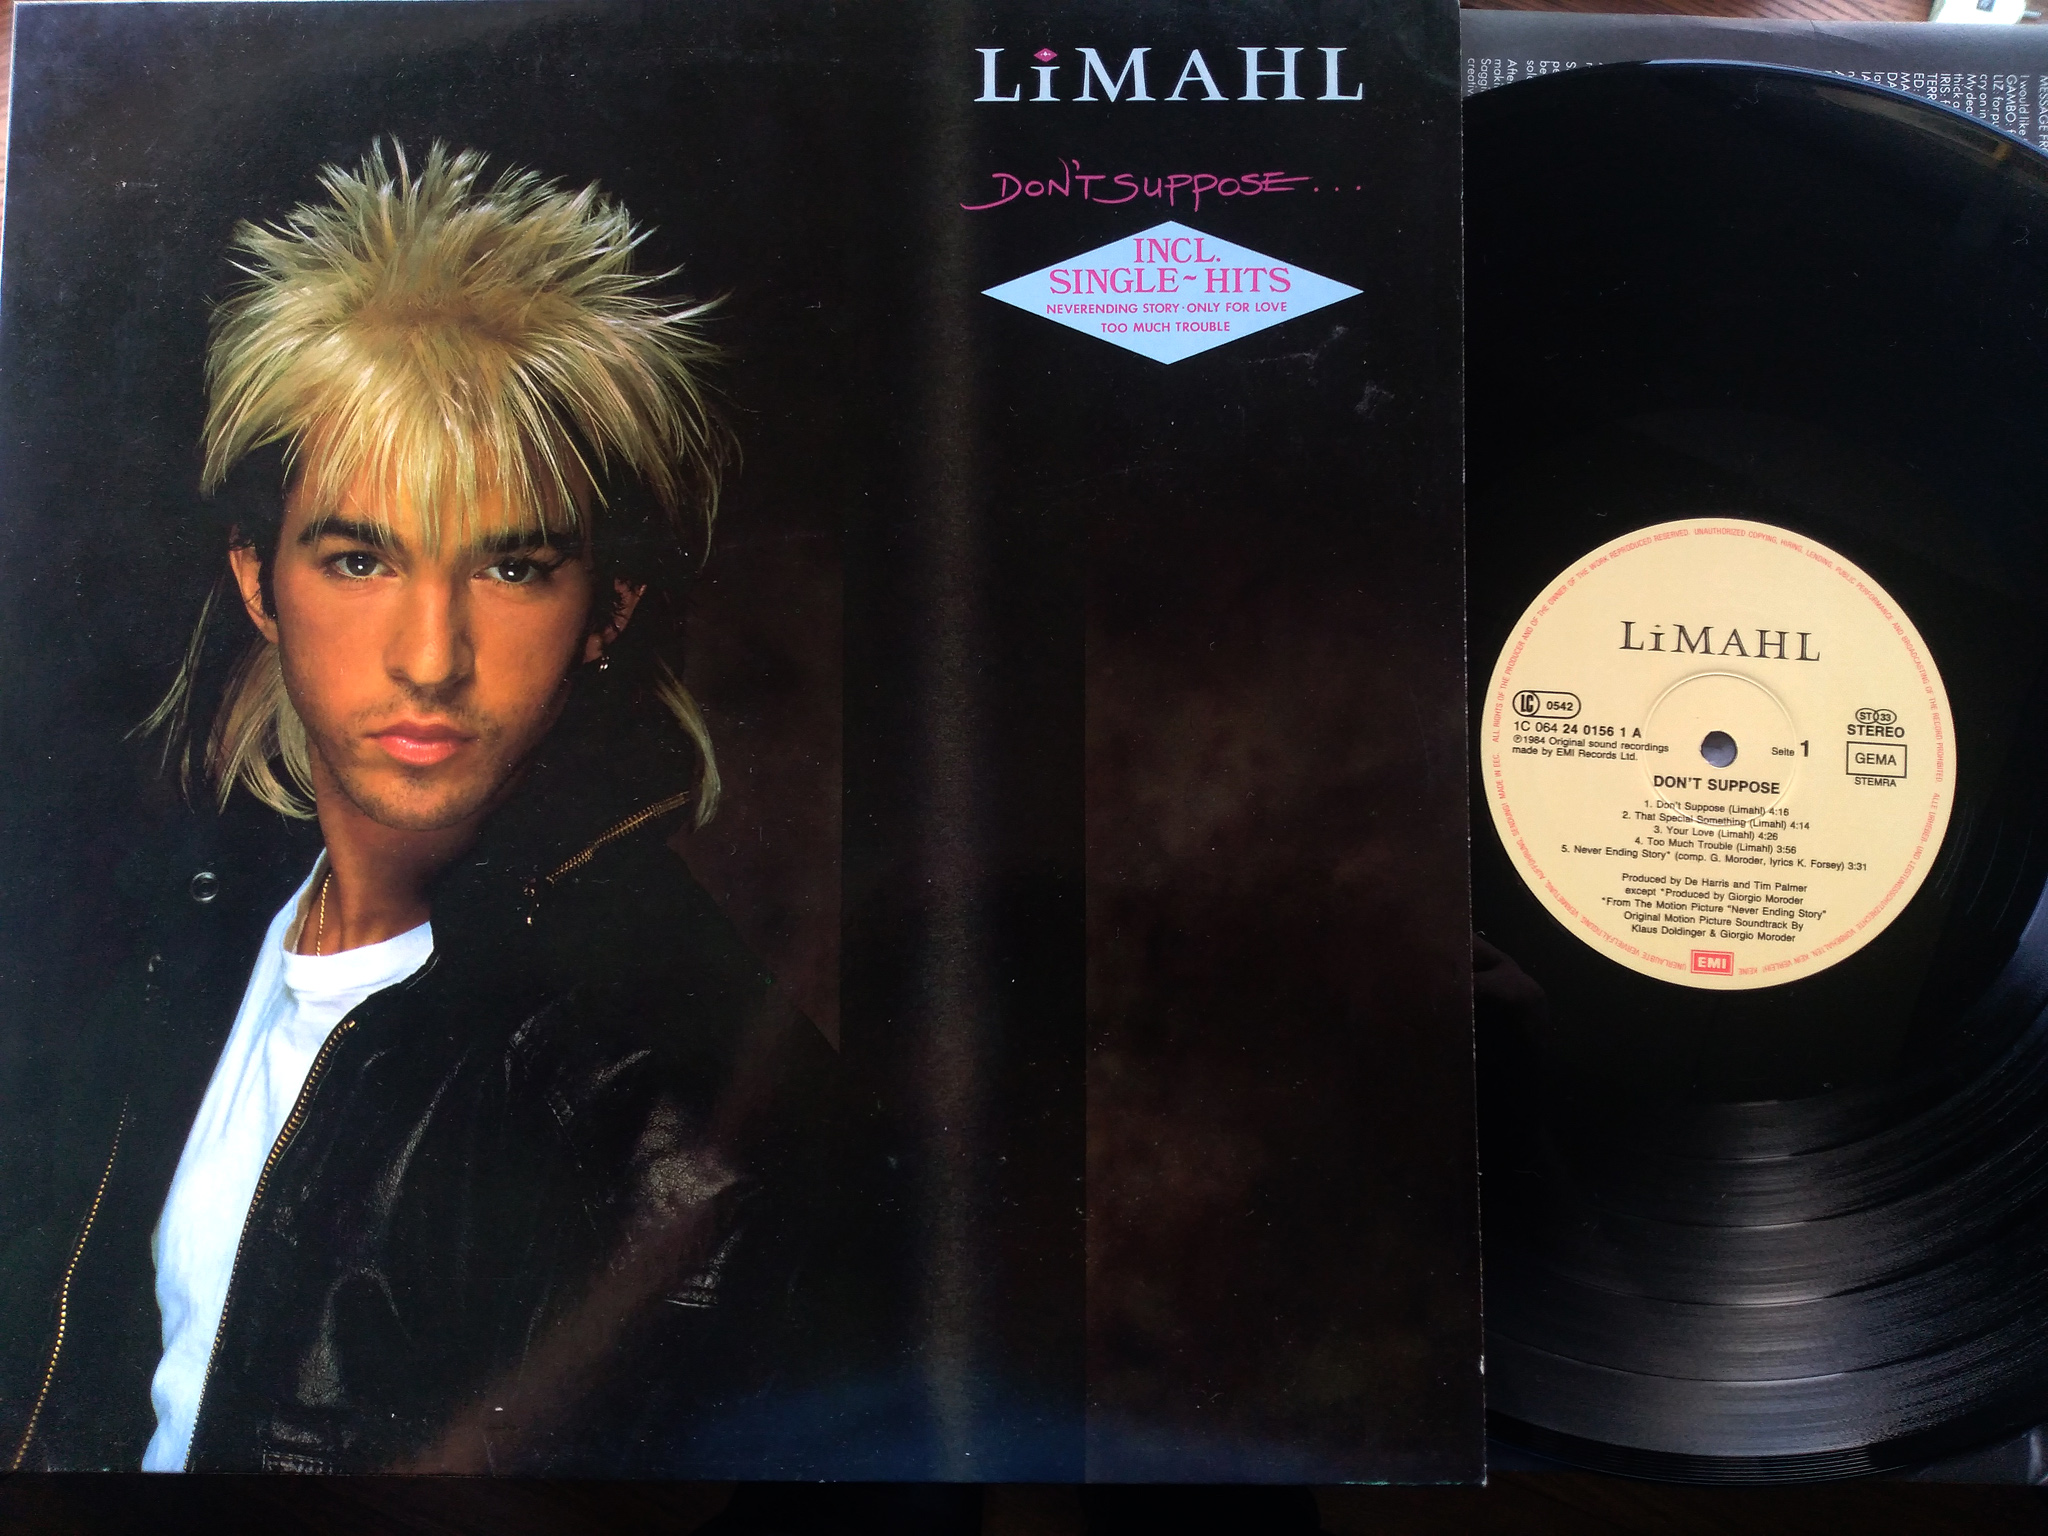 Limahl - Don't Suppose LP